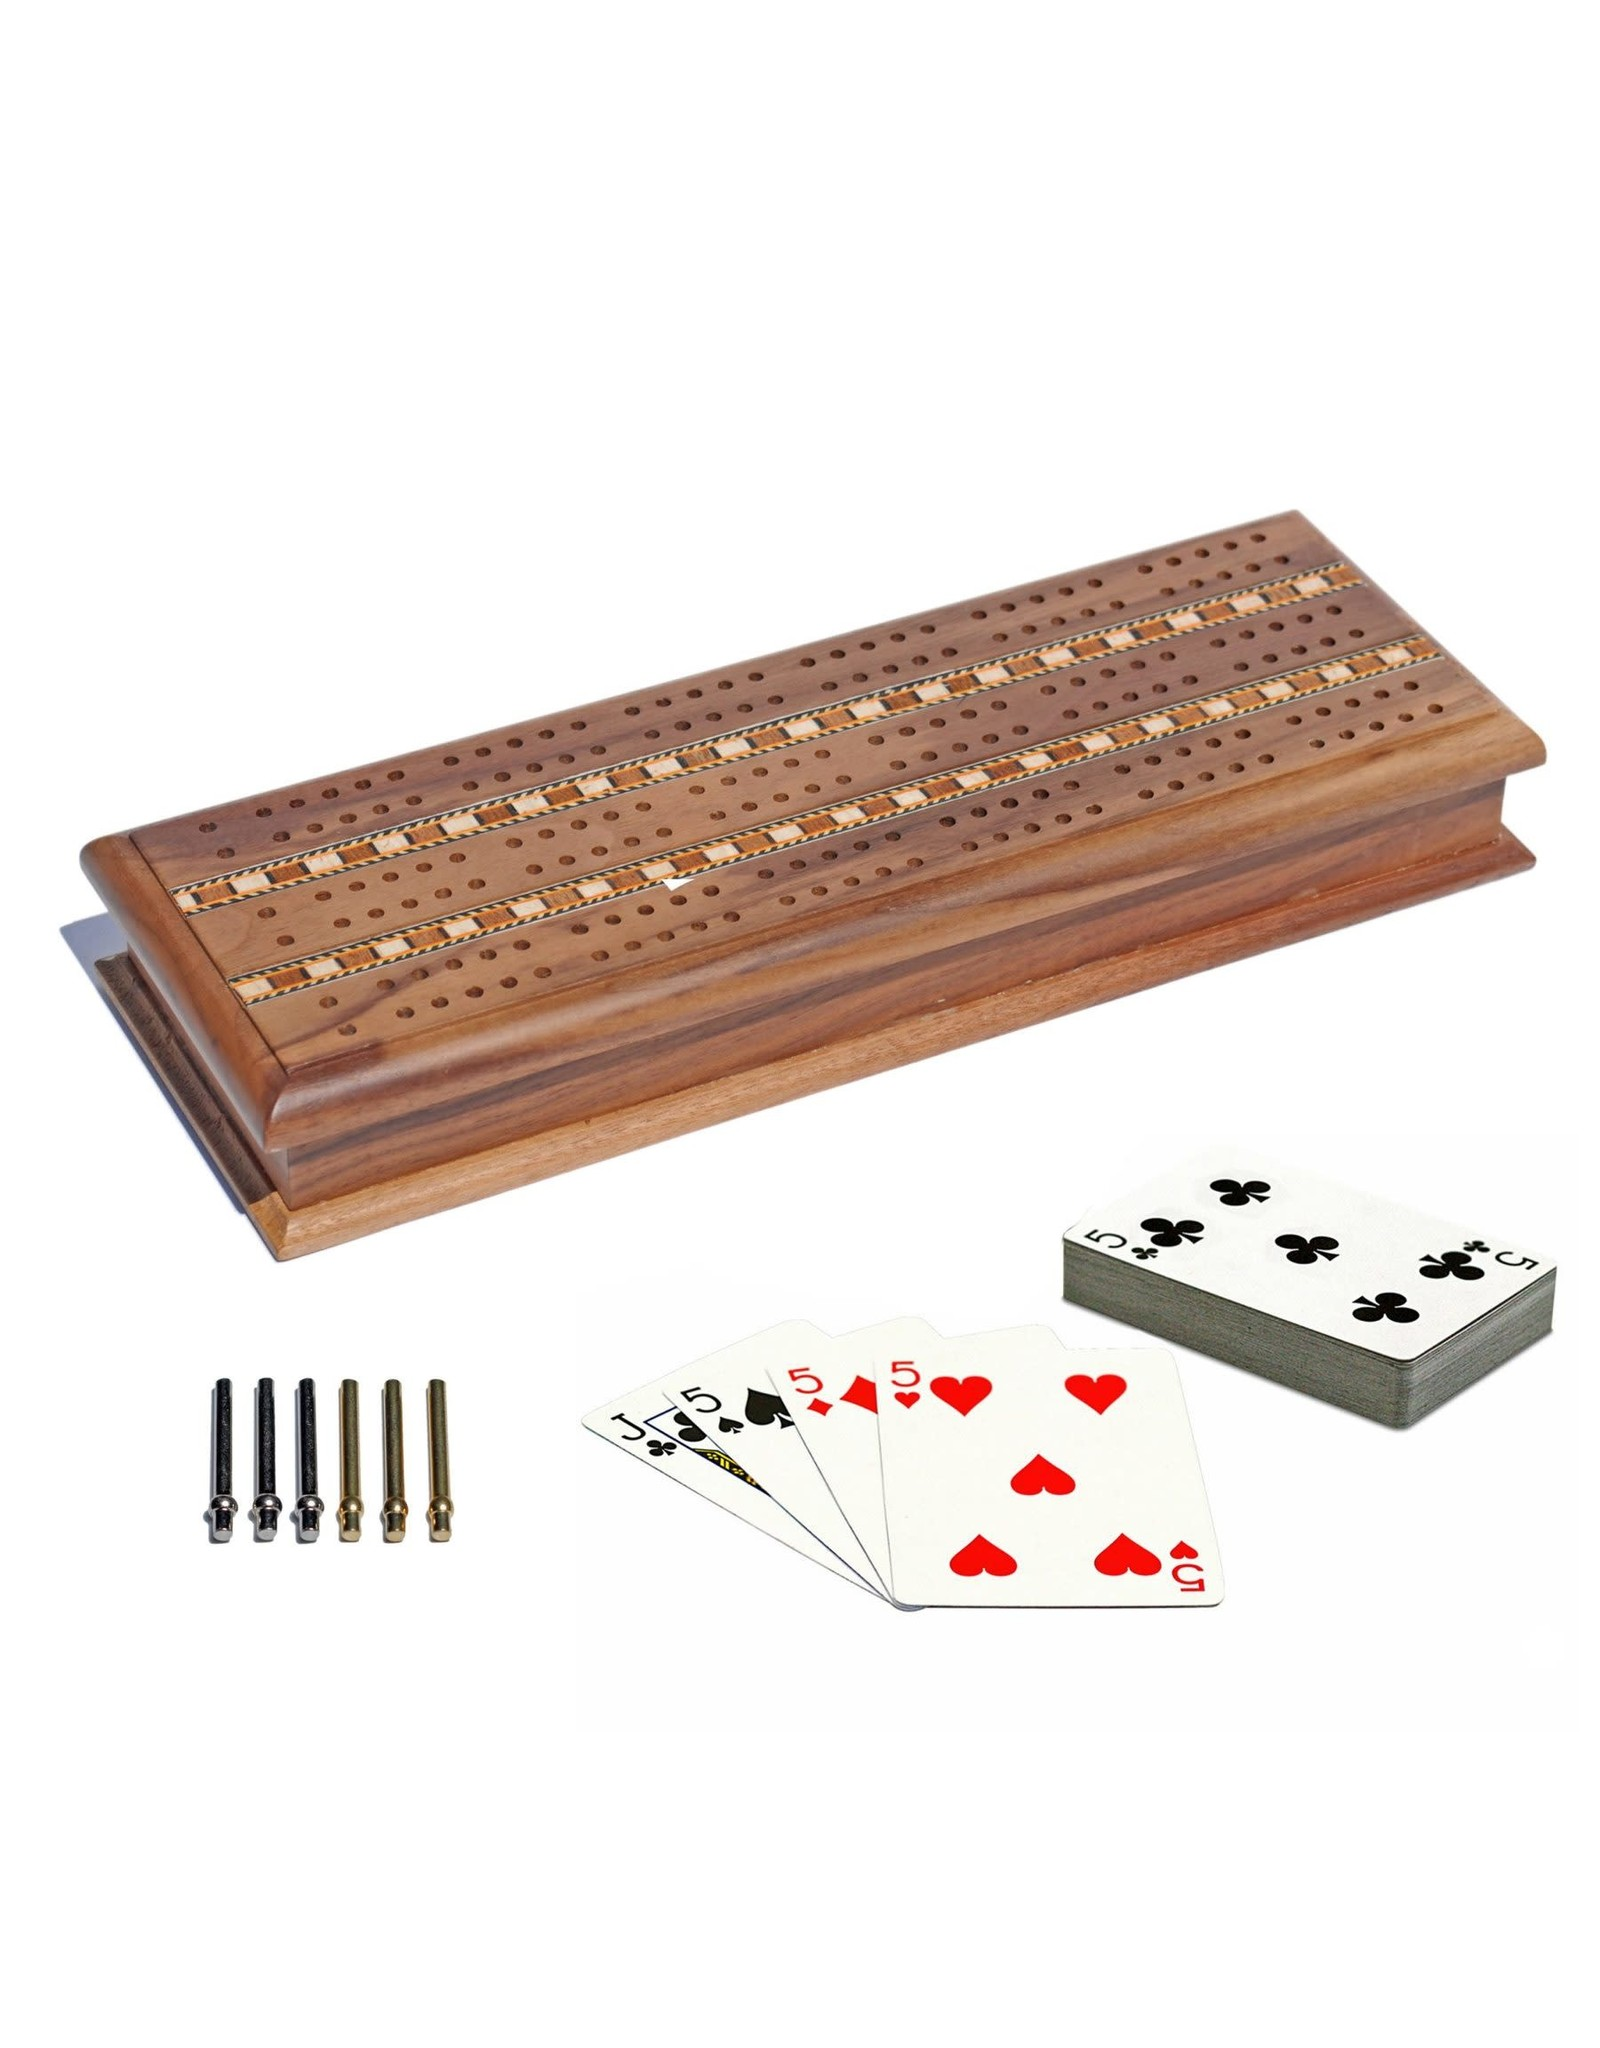 Wood Expressions Cabinet Cribbage Set - Solid Walnut Wood with Inlay Sprint 3 Track Board with Metal Pegs & 2 Decks of Cards